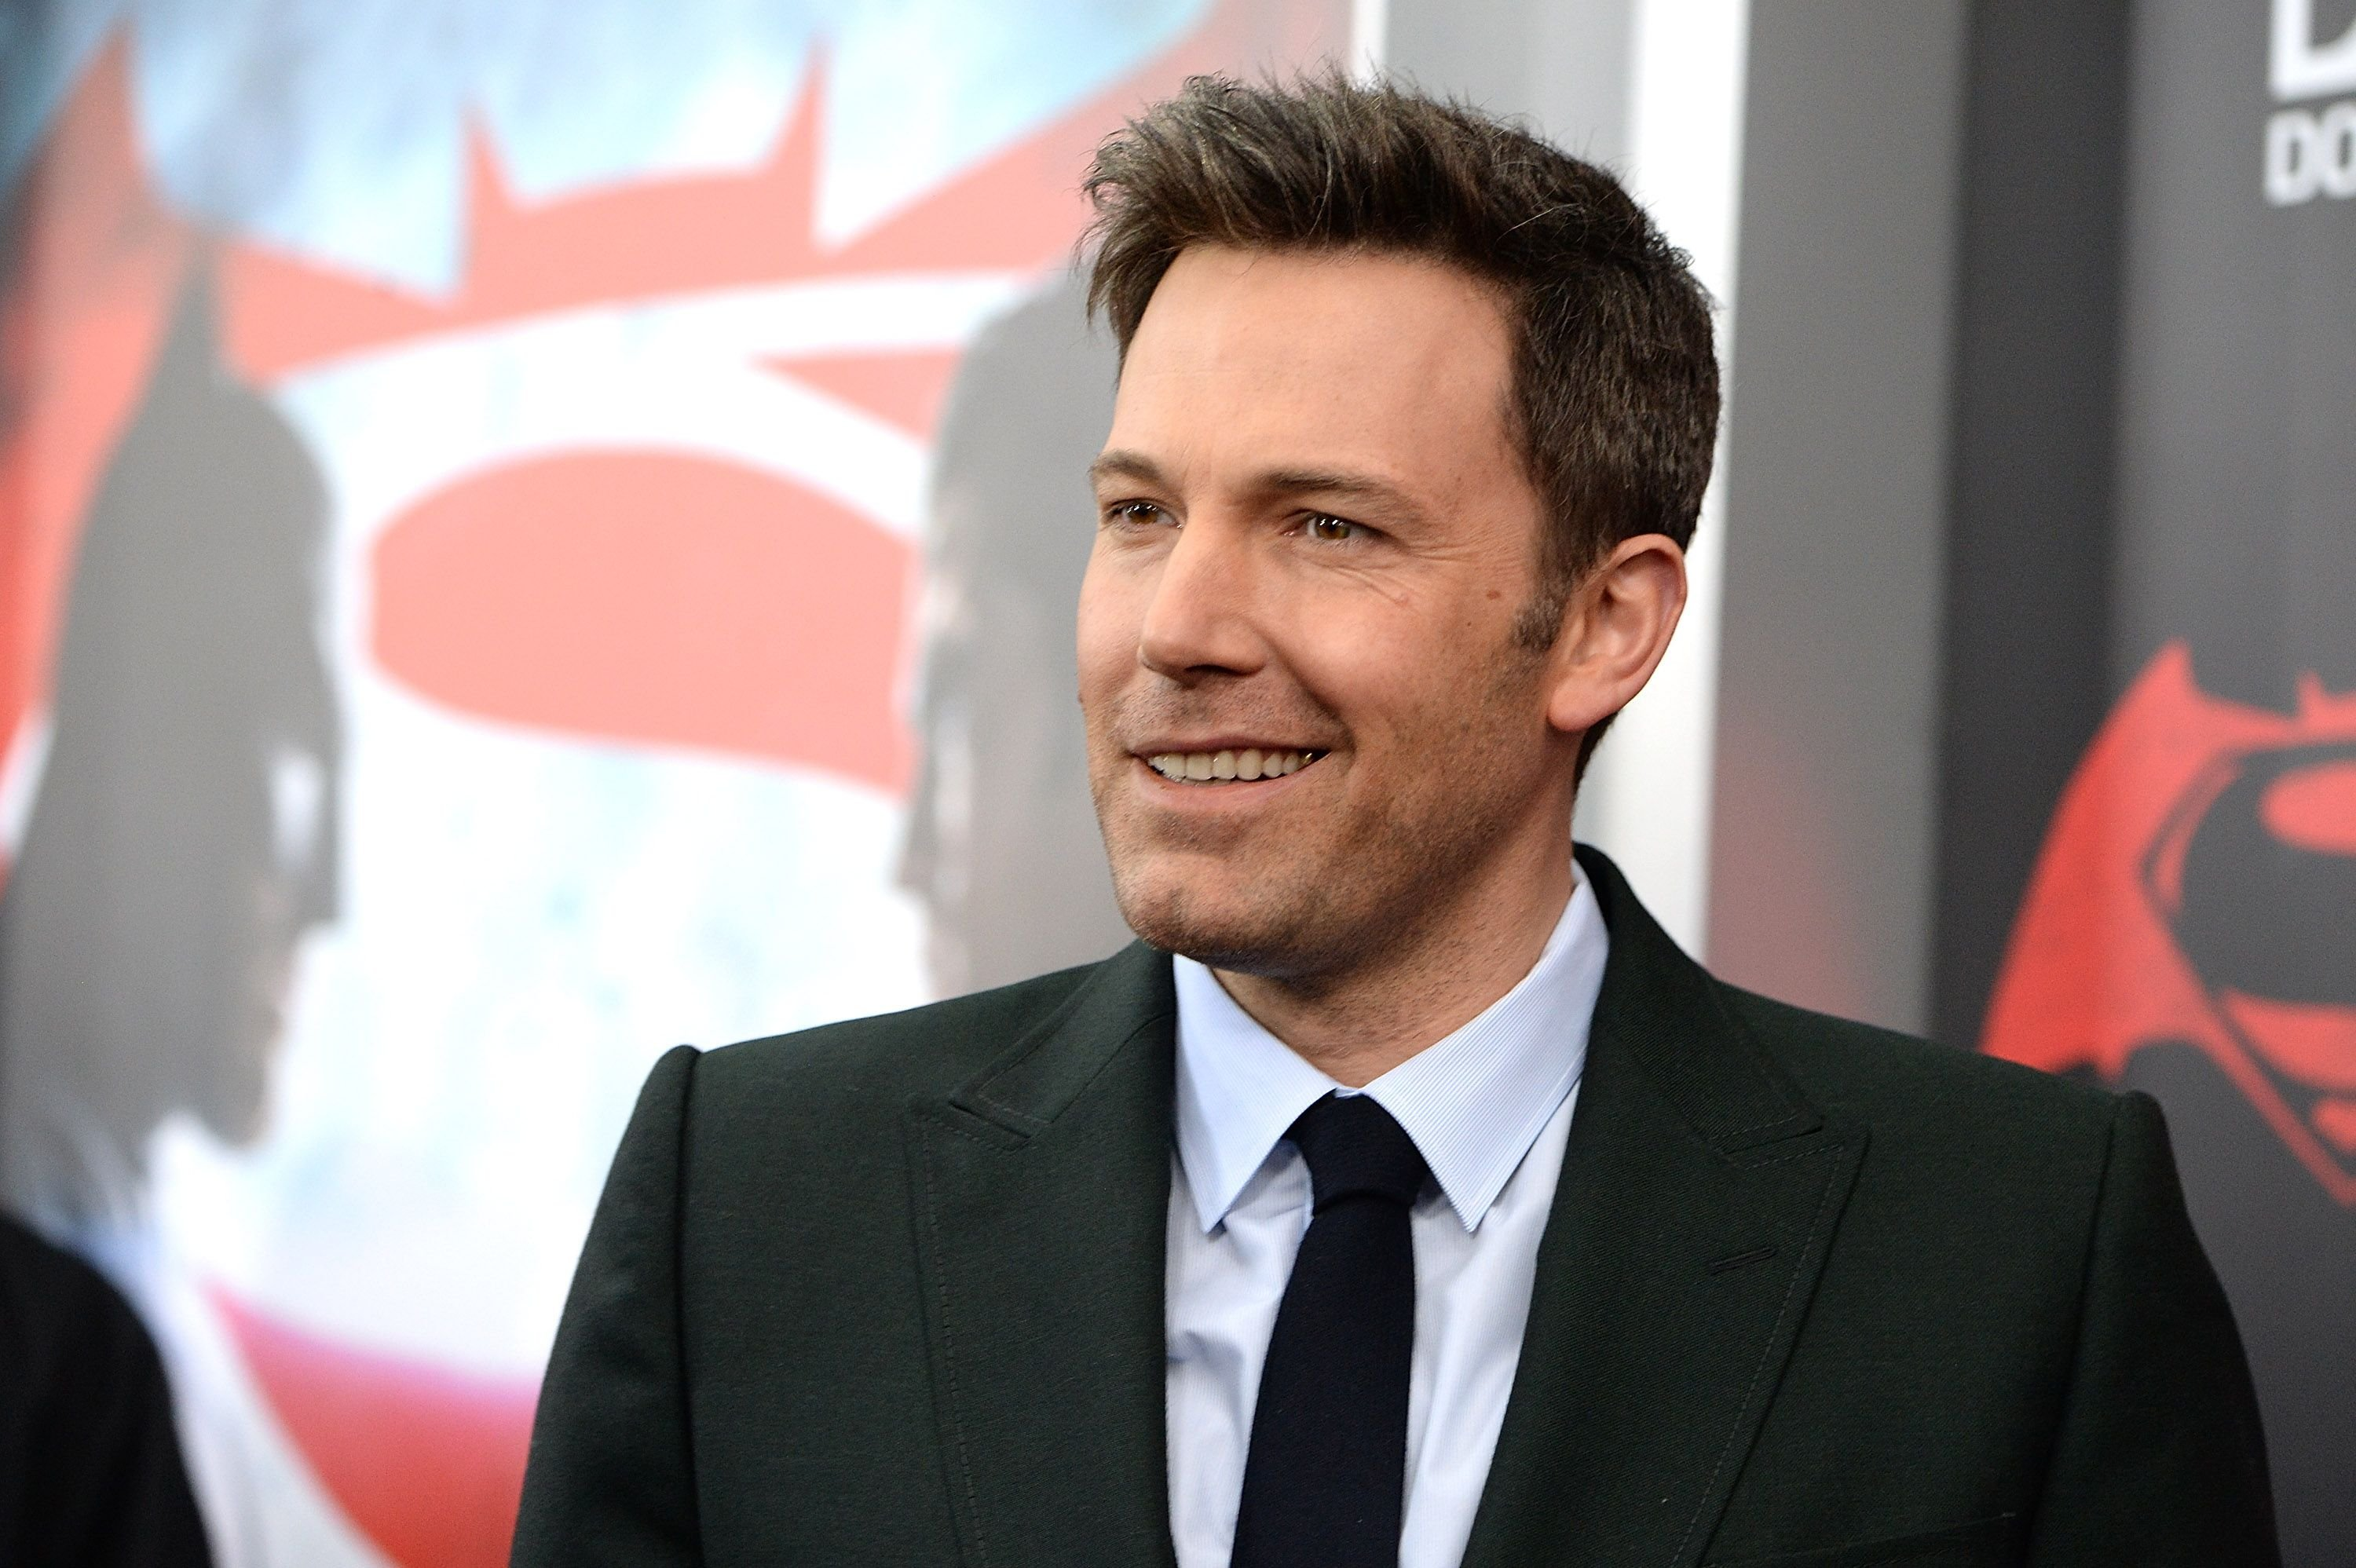 """Ben Affleck at the premier of """"Batman V Superman: Dawn Of Justice"""" in 2016 in New York City 